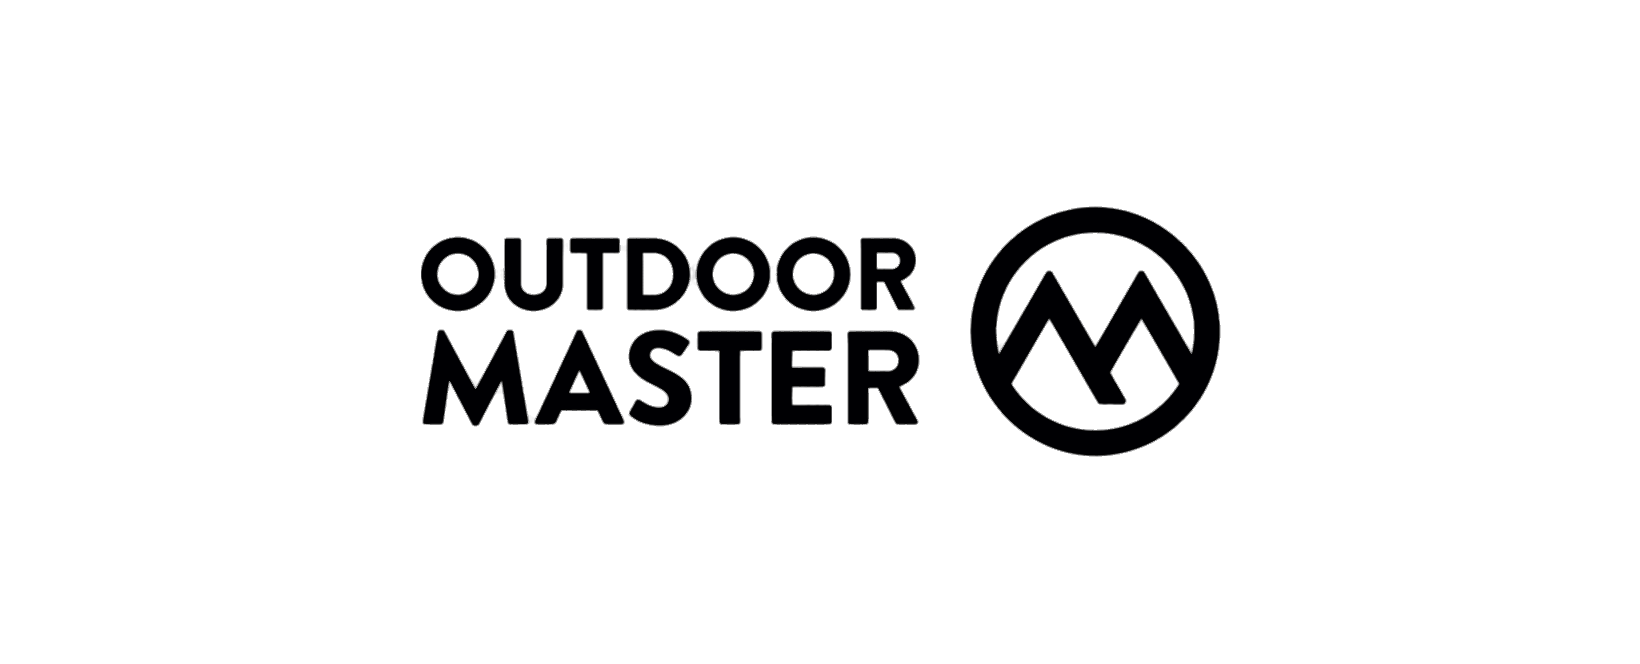 OutdoorMaster Coupon Code 2021